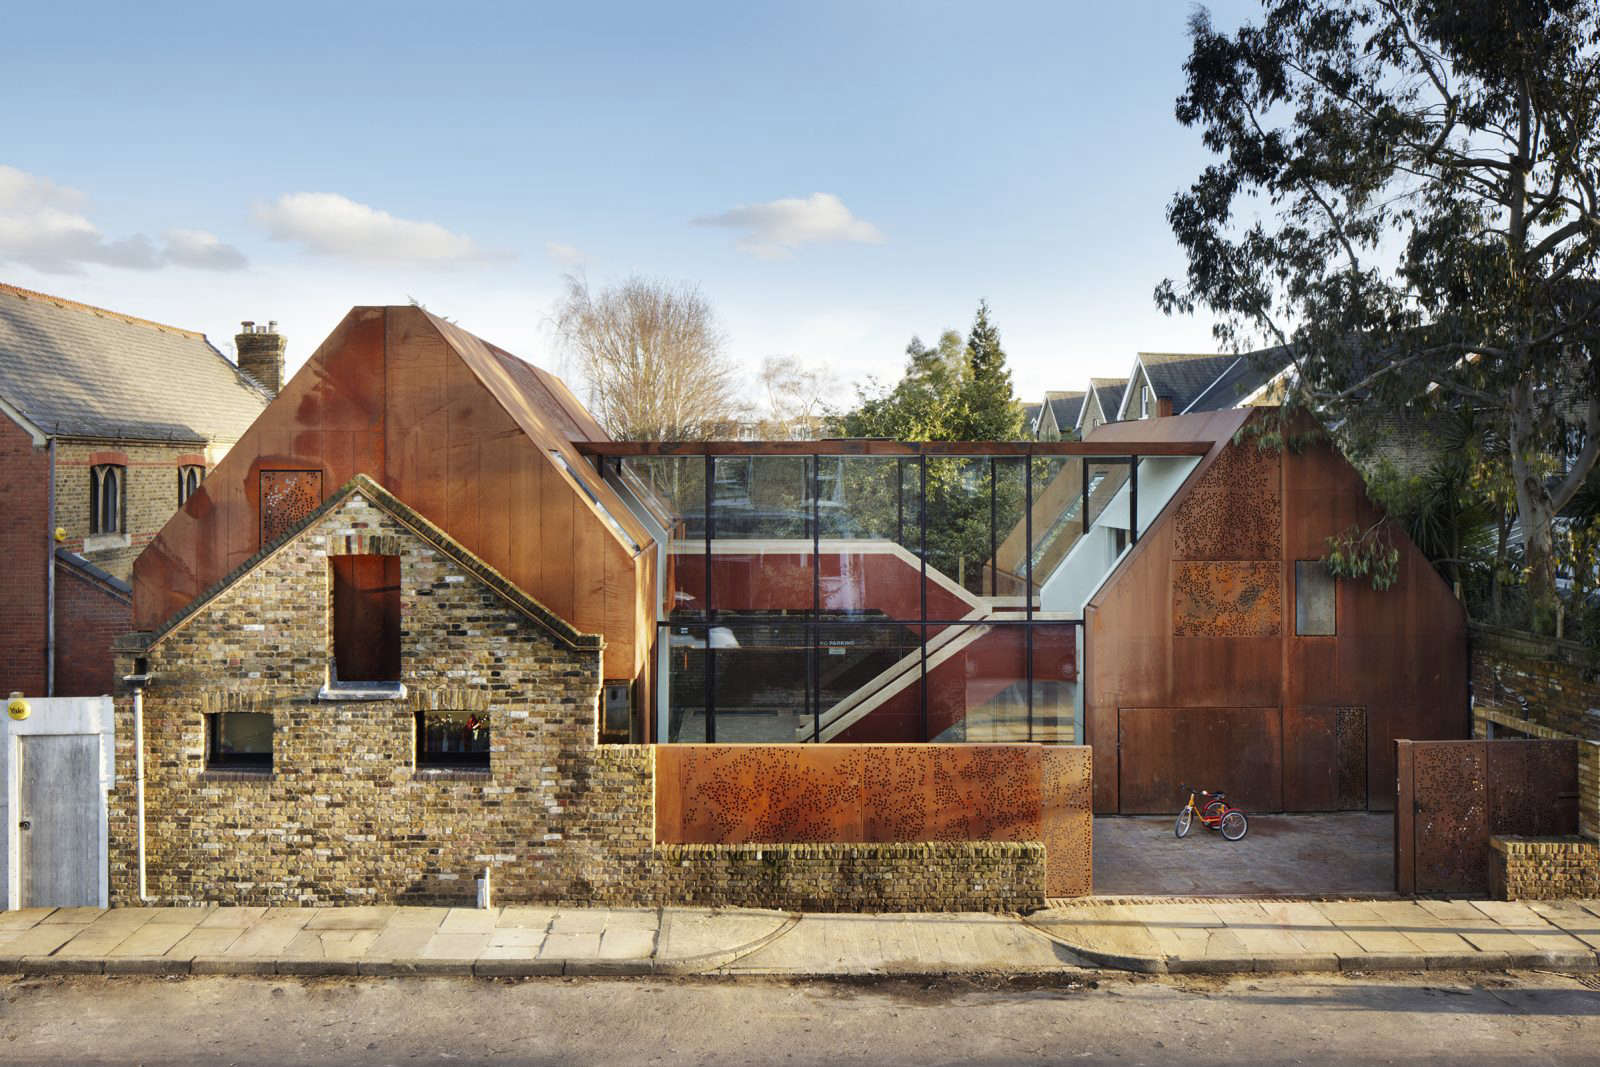 Architects Piercy & Company designed a perforated steel fence to let light into a brick-paved courtyard and to visually connect the two gabled wings of a house built behind the facade of a Victorian stables in London. Photograph via The Modern House.